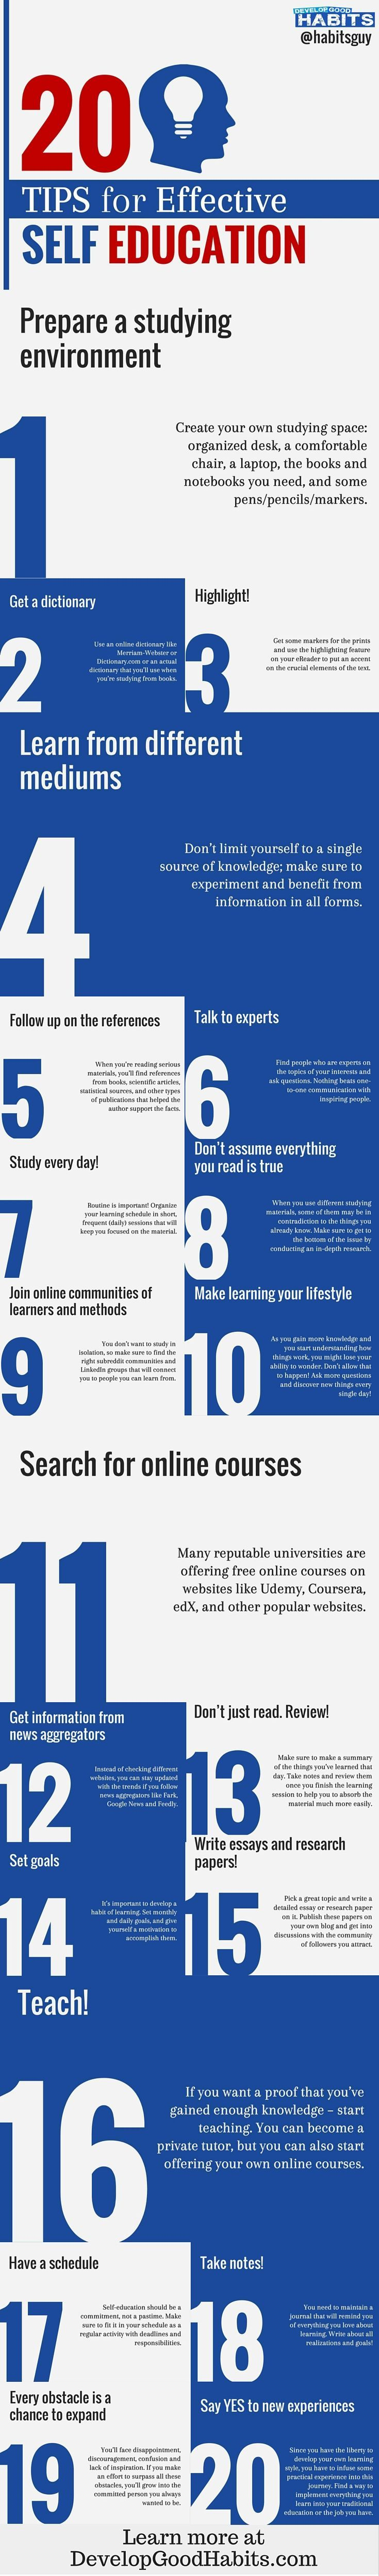 Tips for continuing your self education. Regardless of age! These days self education and growth is a lifelong habit. See some simple tips for getting the most out of time and ongoing education.